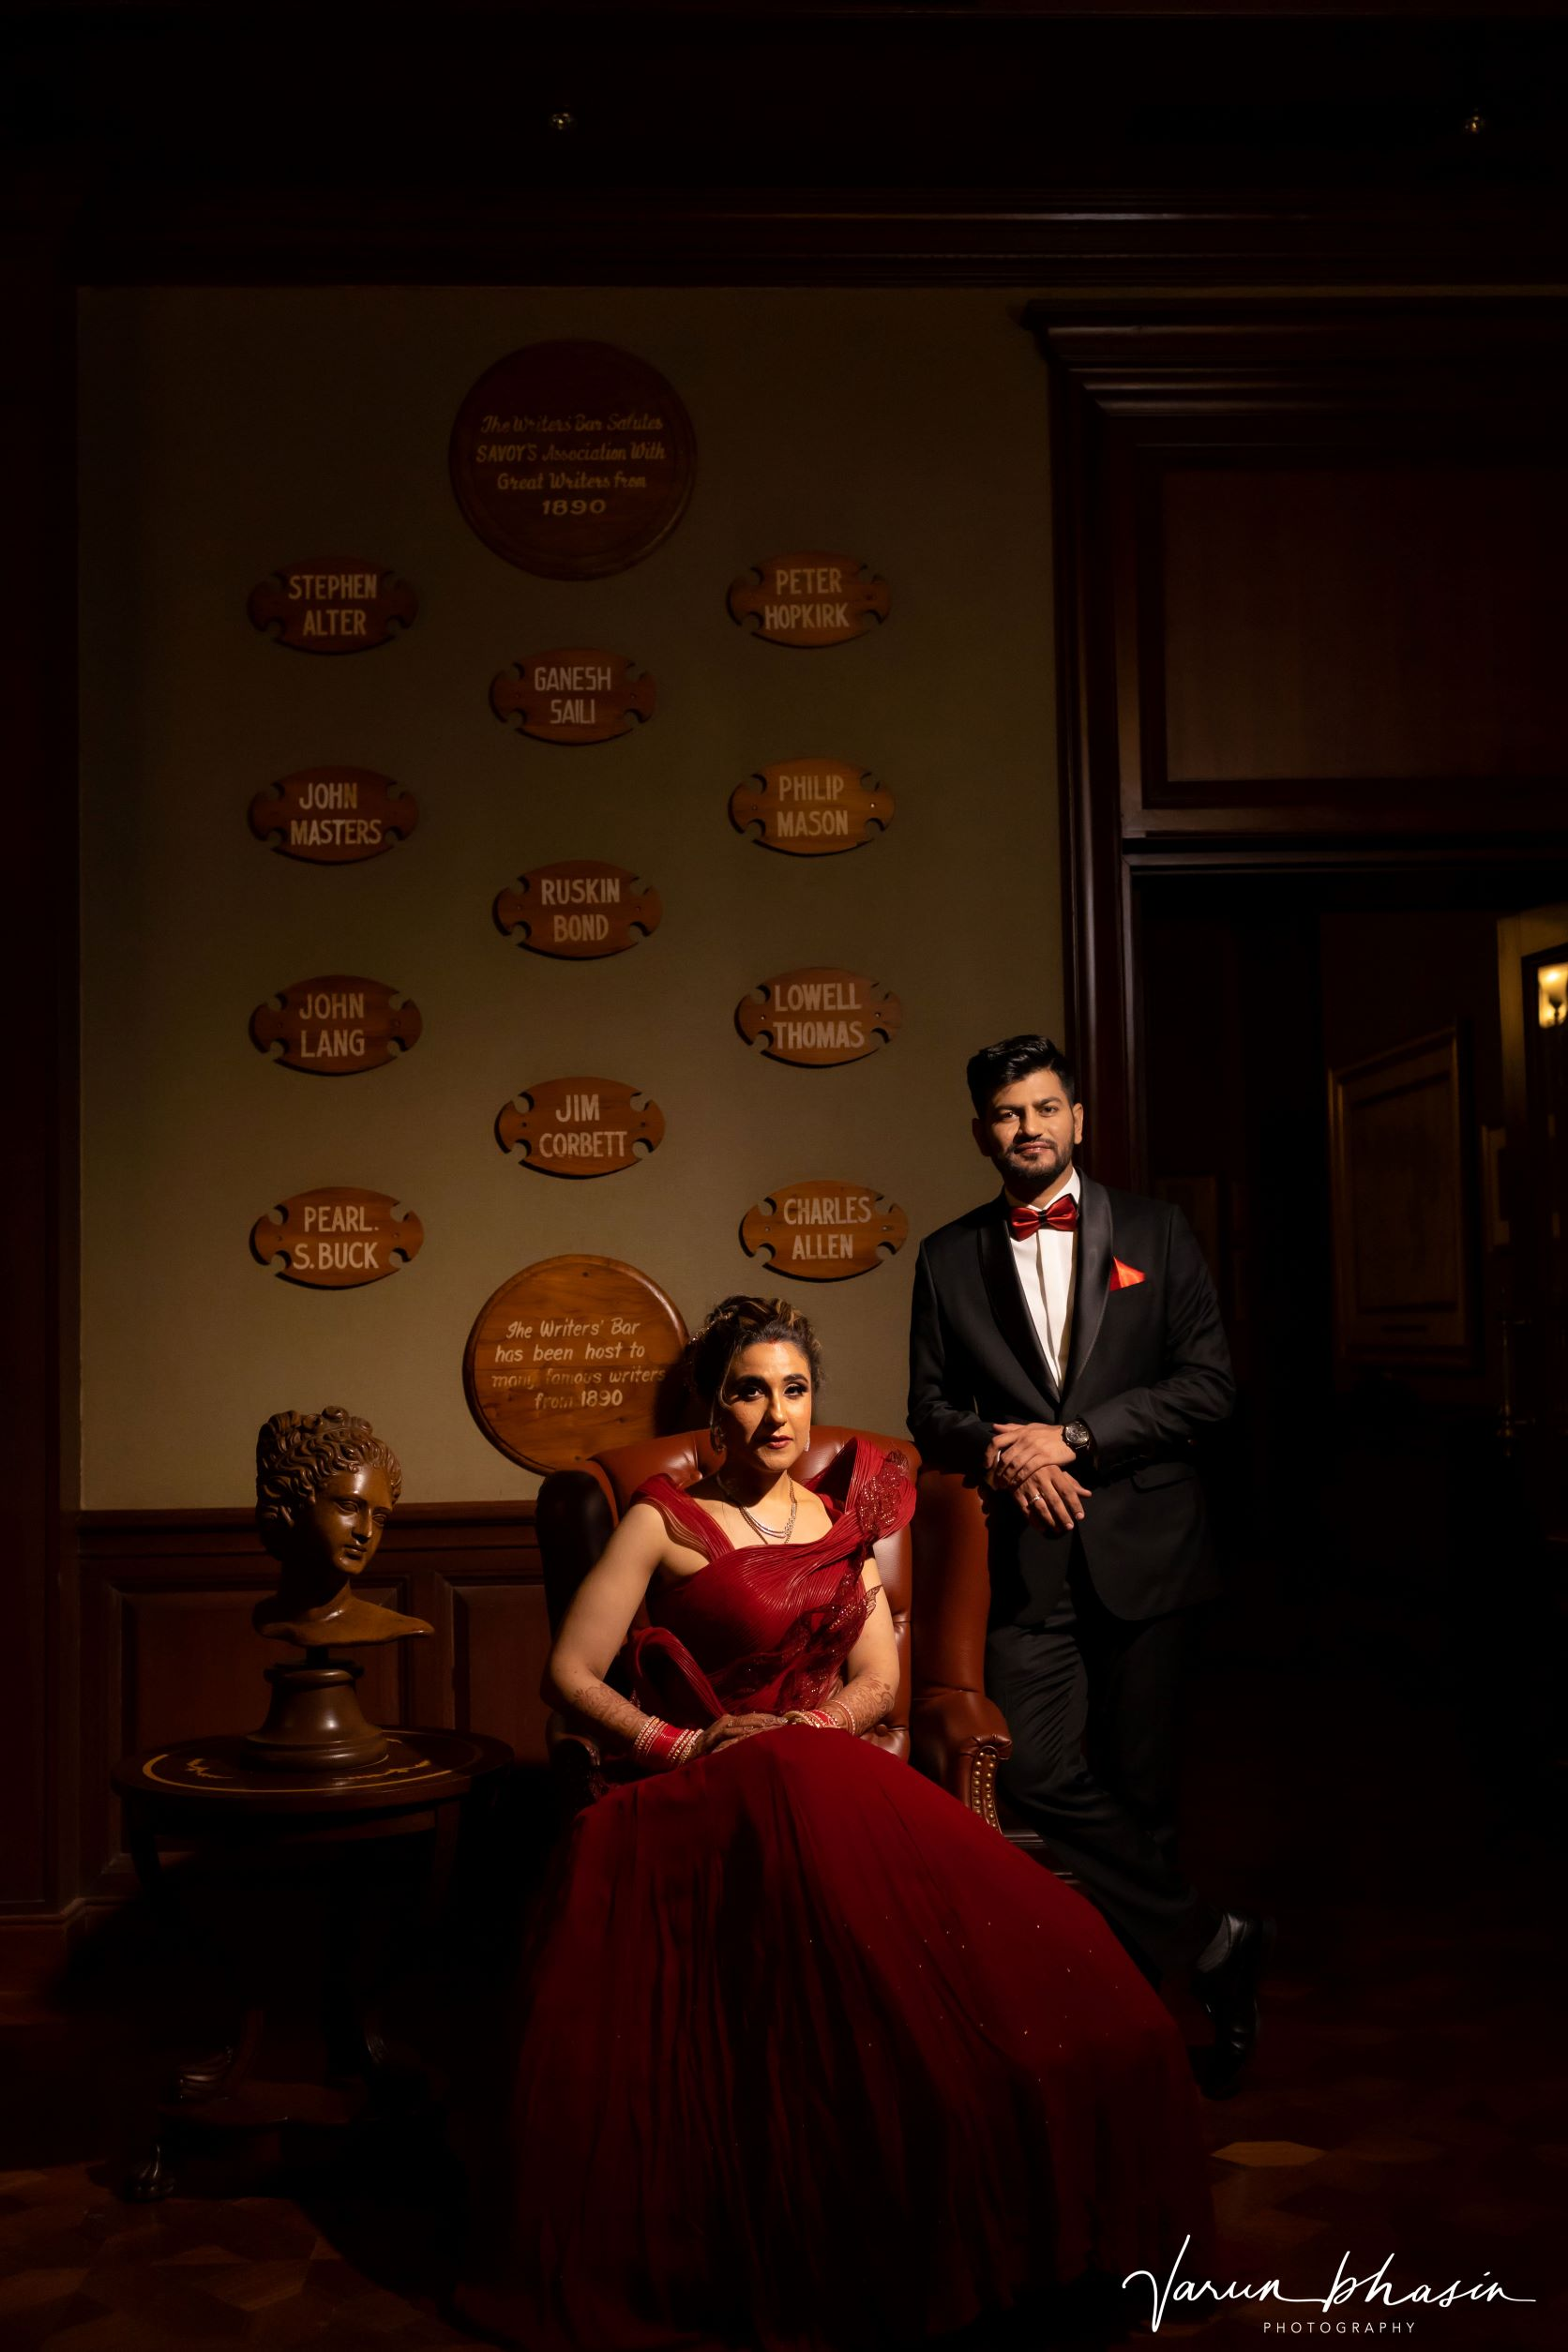 regal couple in contrasting outfits